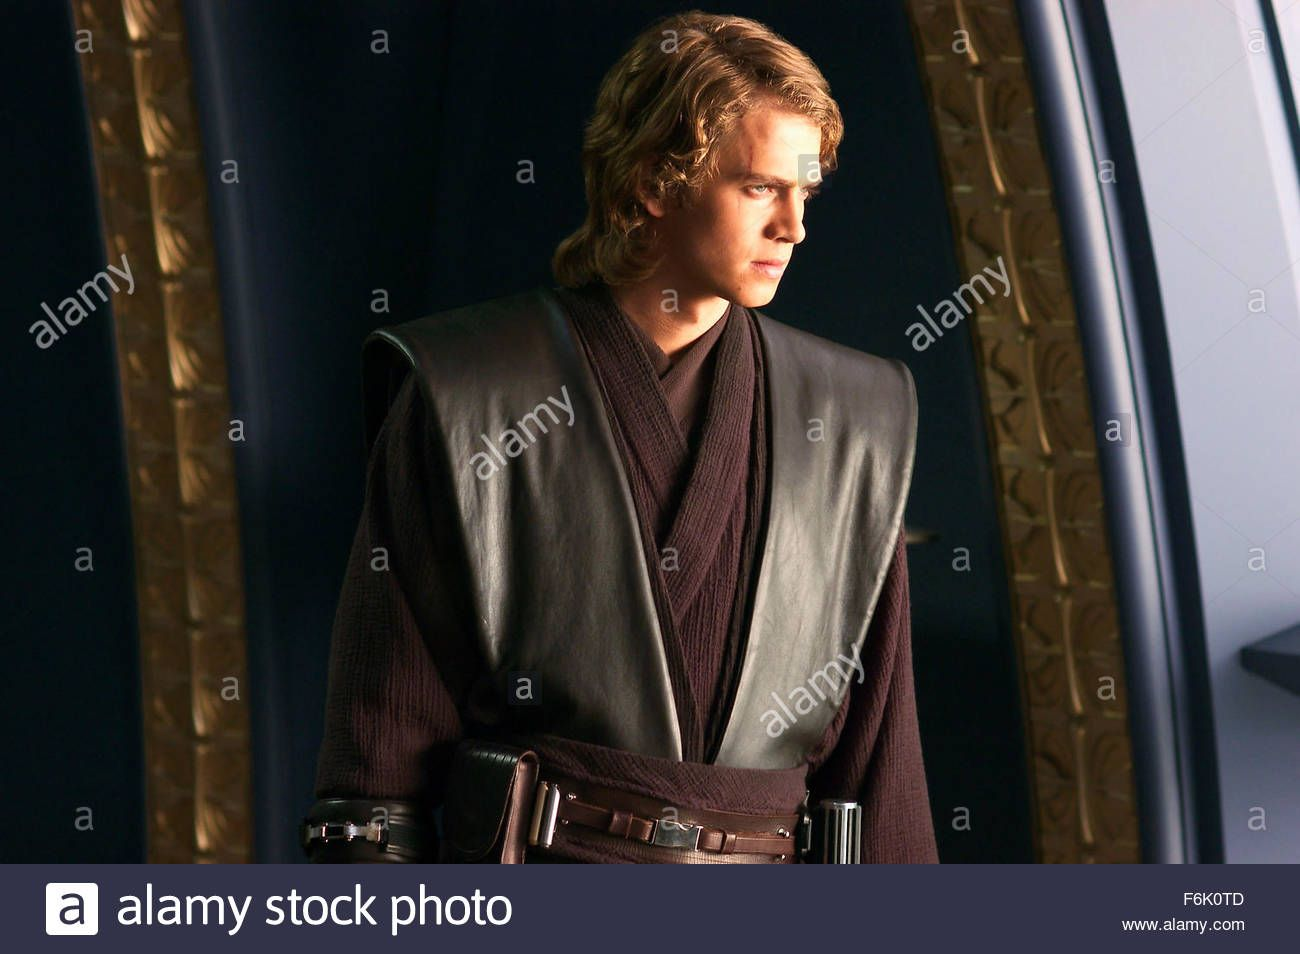 Release Date May 19 2005 Movie Title Star Wars Episode Iii Revenge Of The Sith Studio Lucasfilm Plo Star Wars Anakin Star Wars Episodes Star Wars Memes